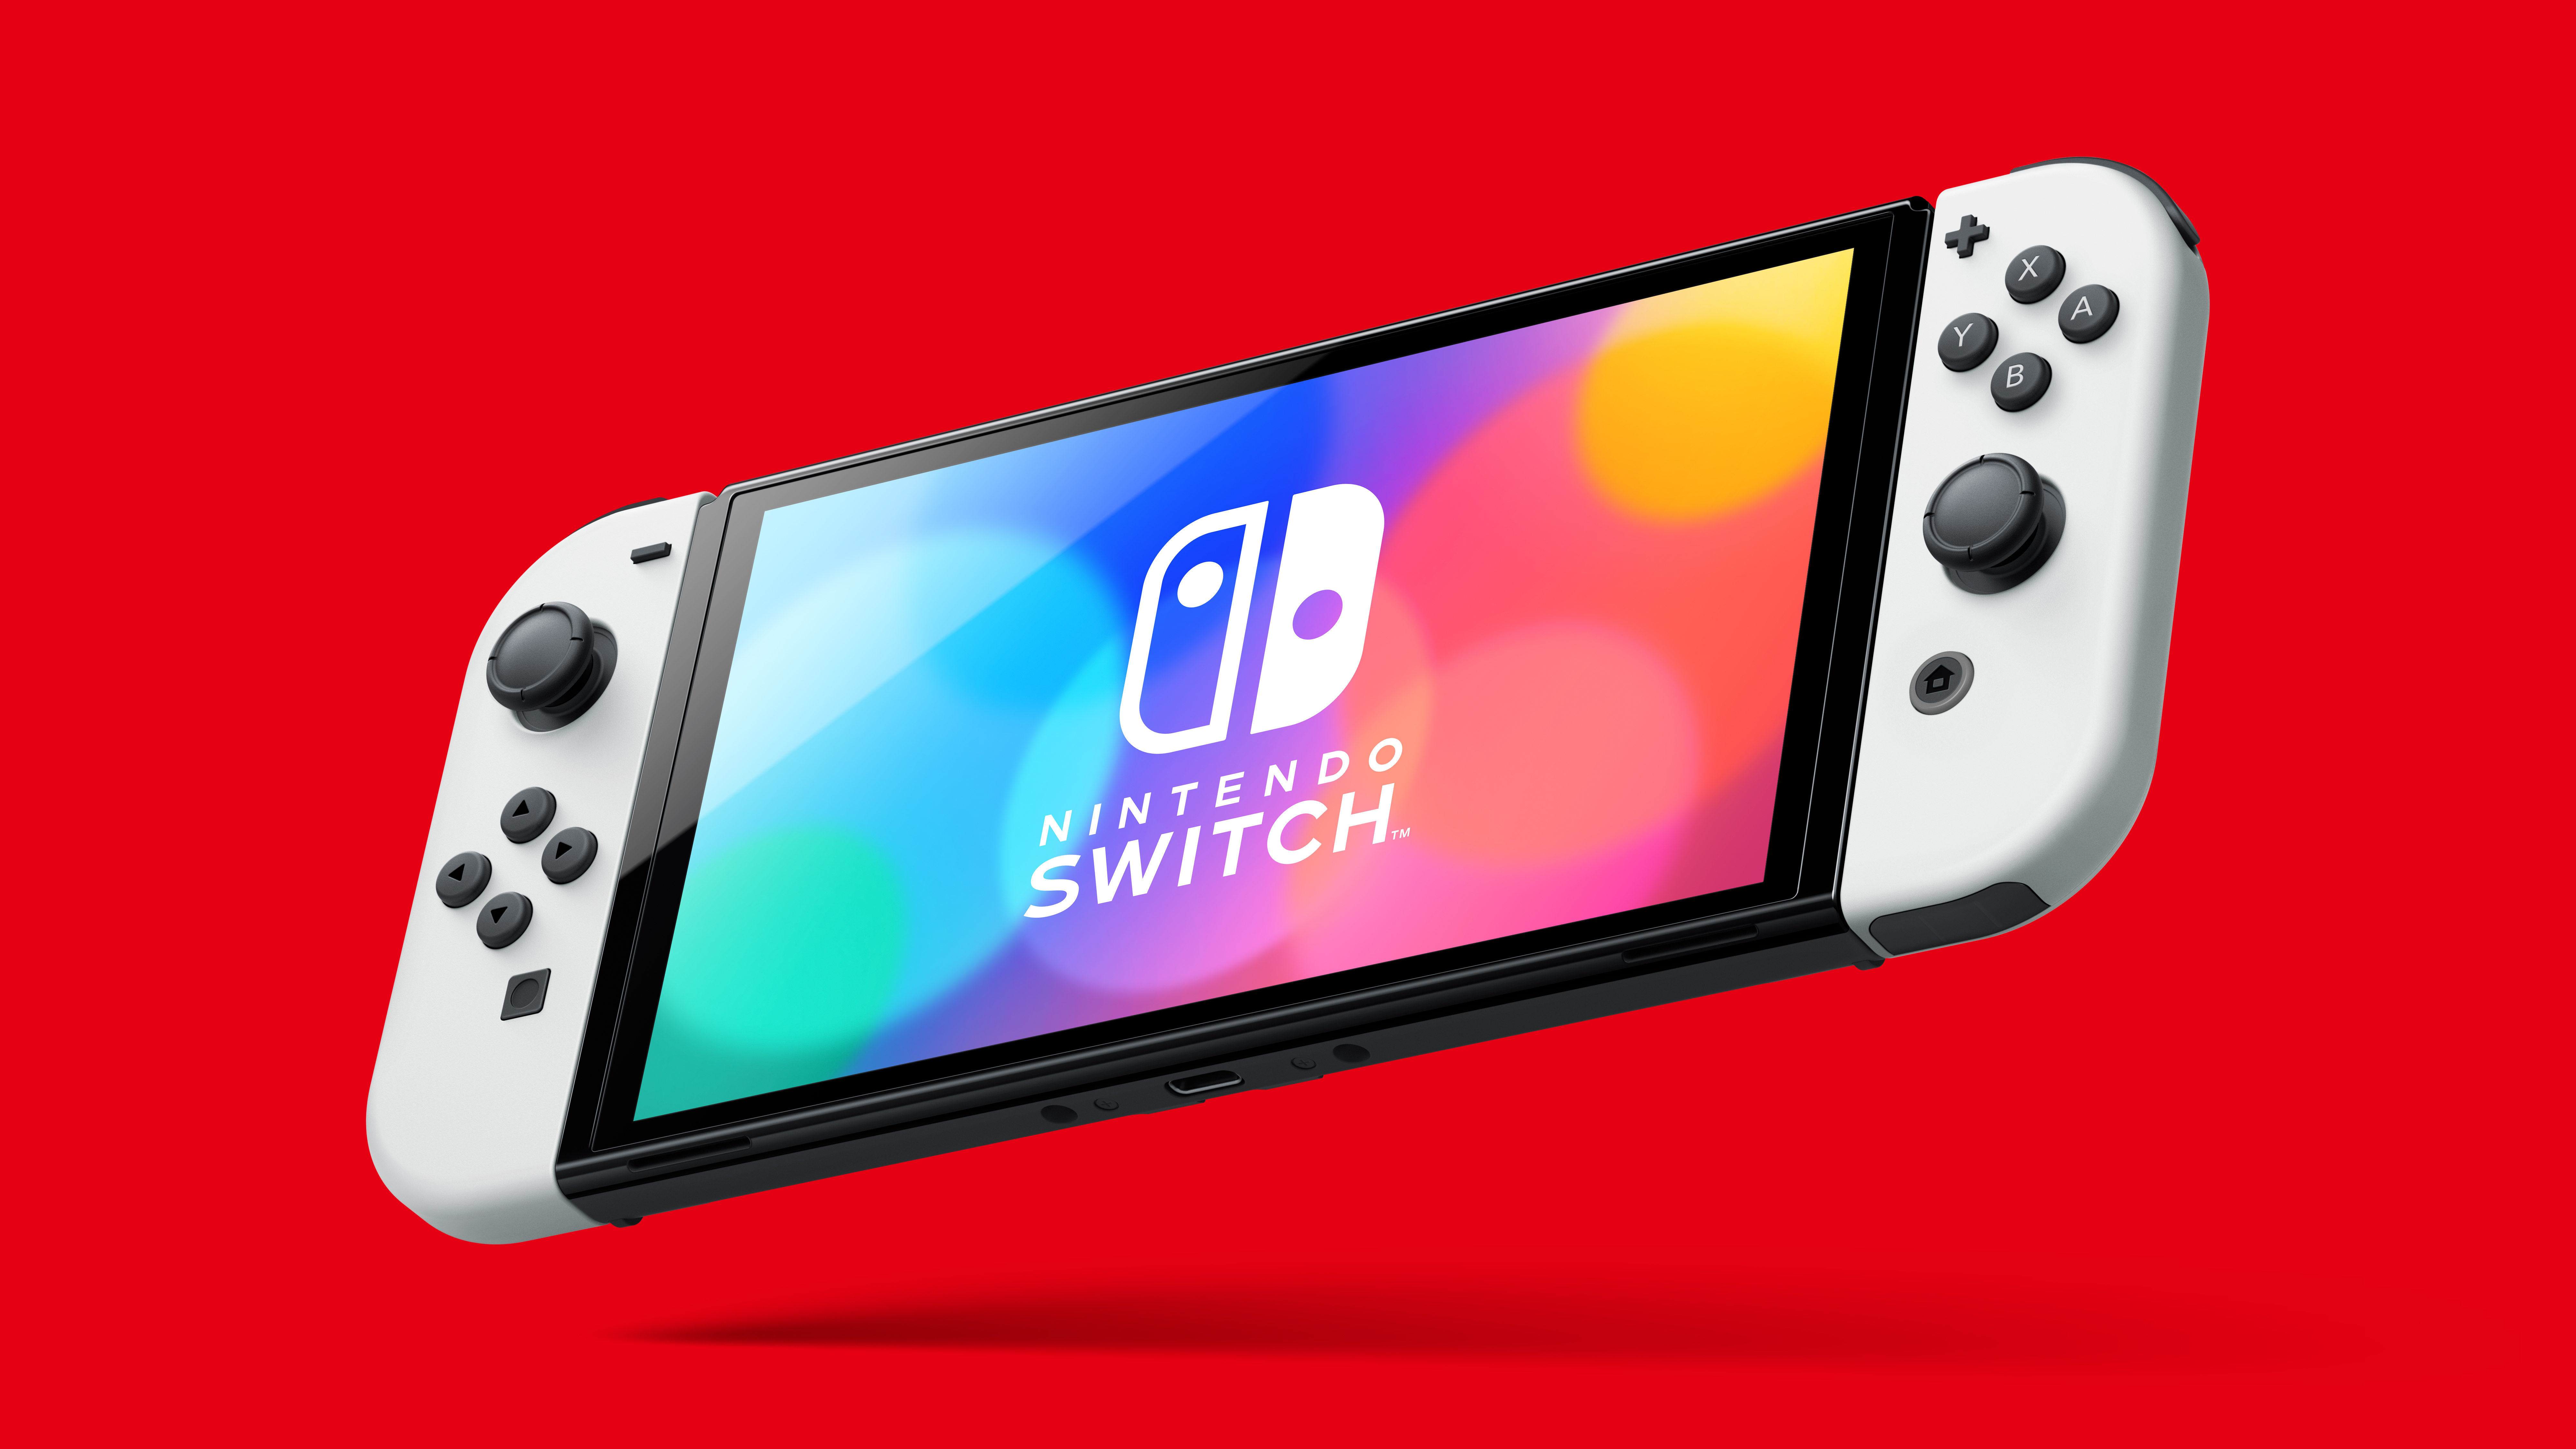 The next Nintendo Direct takes place on September 23rd at 6PM ET